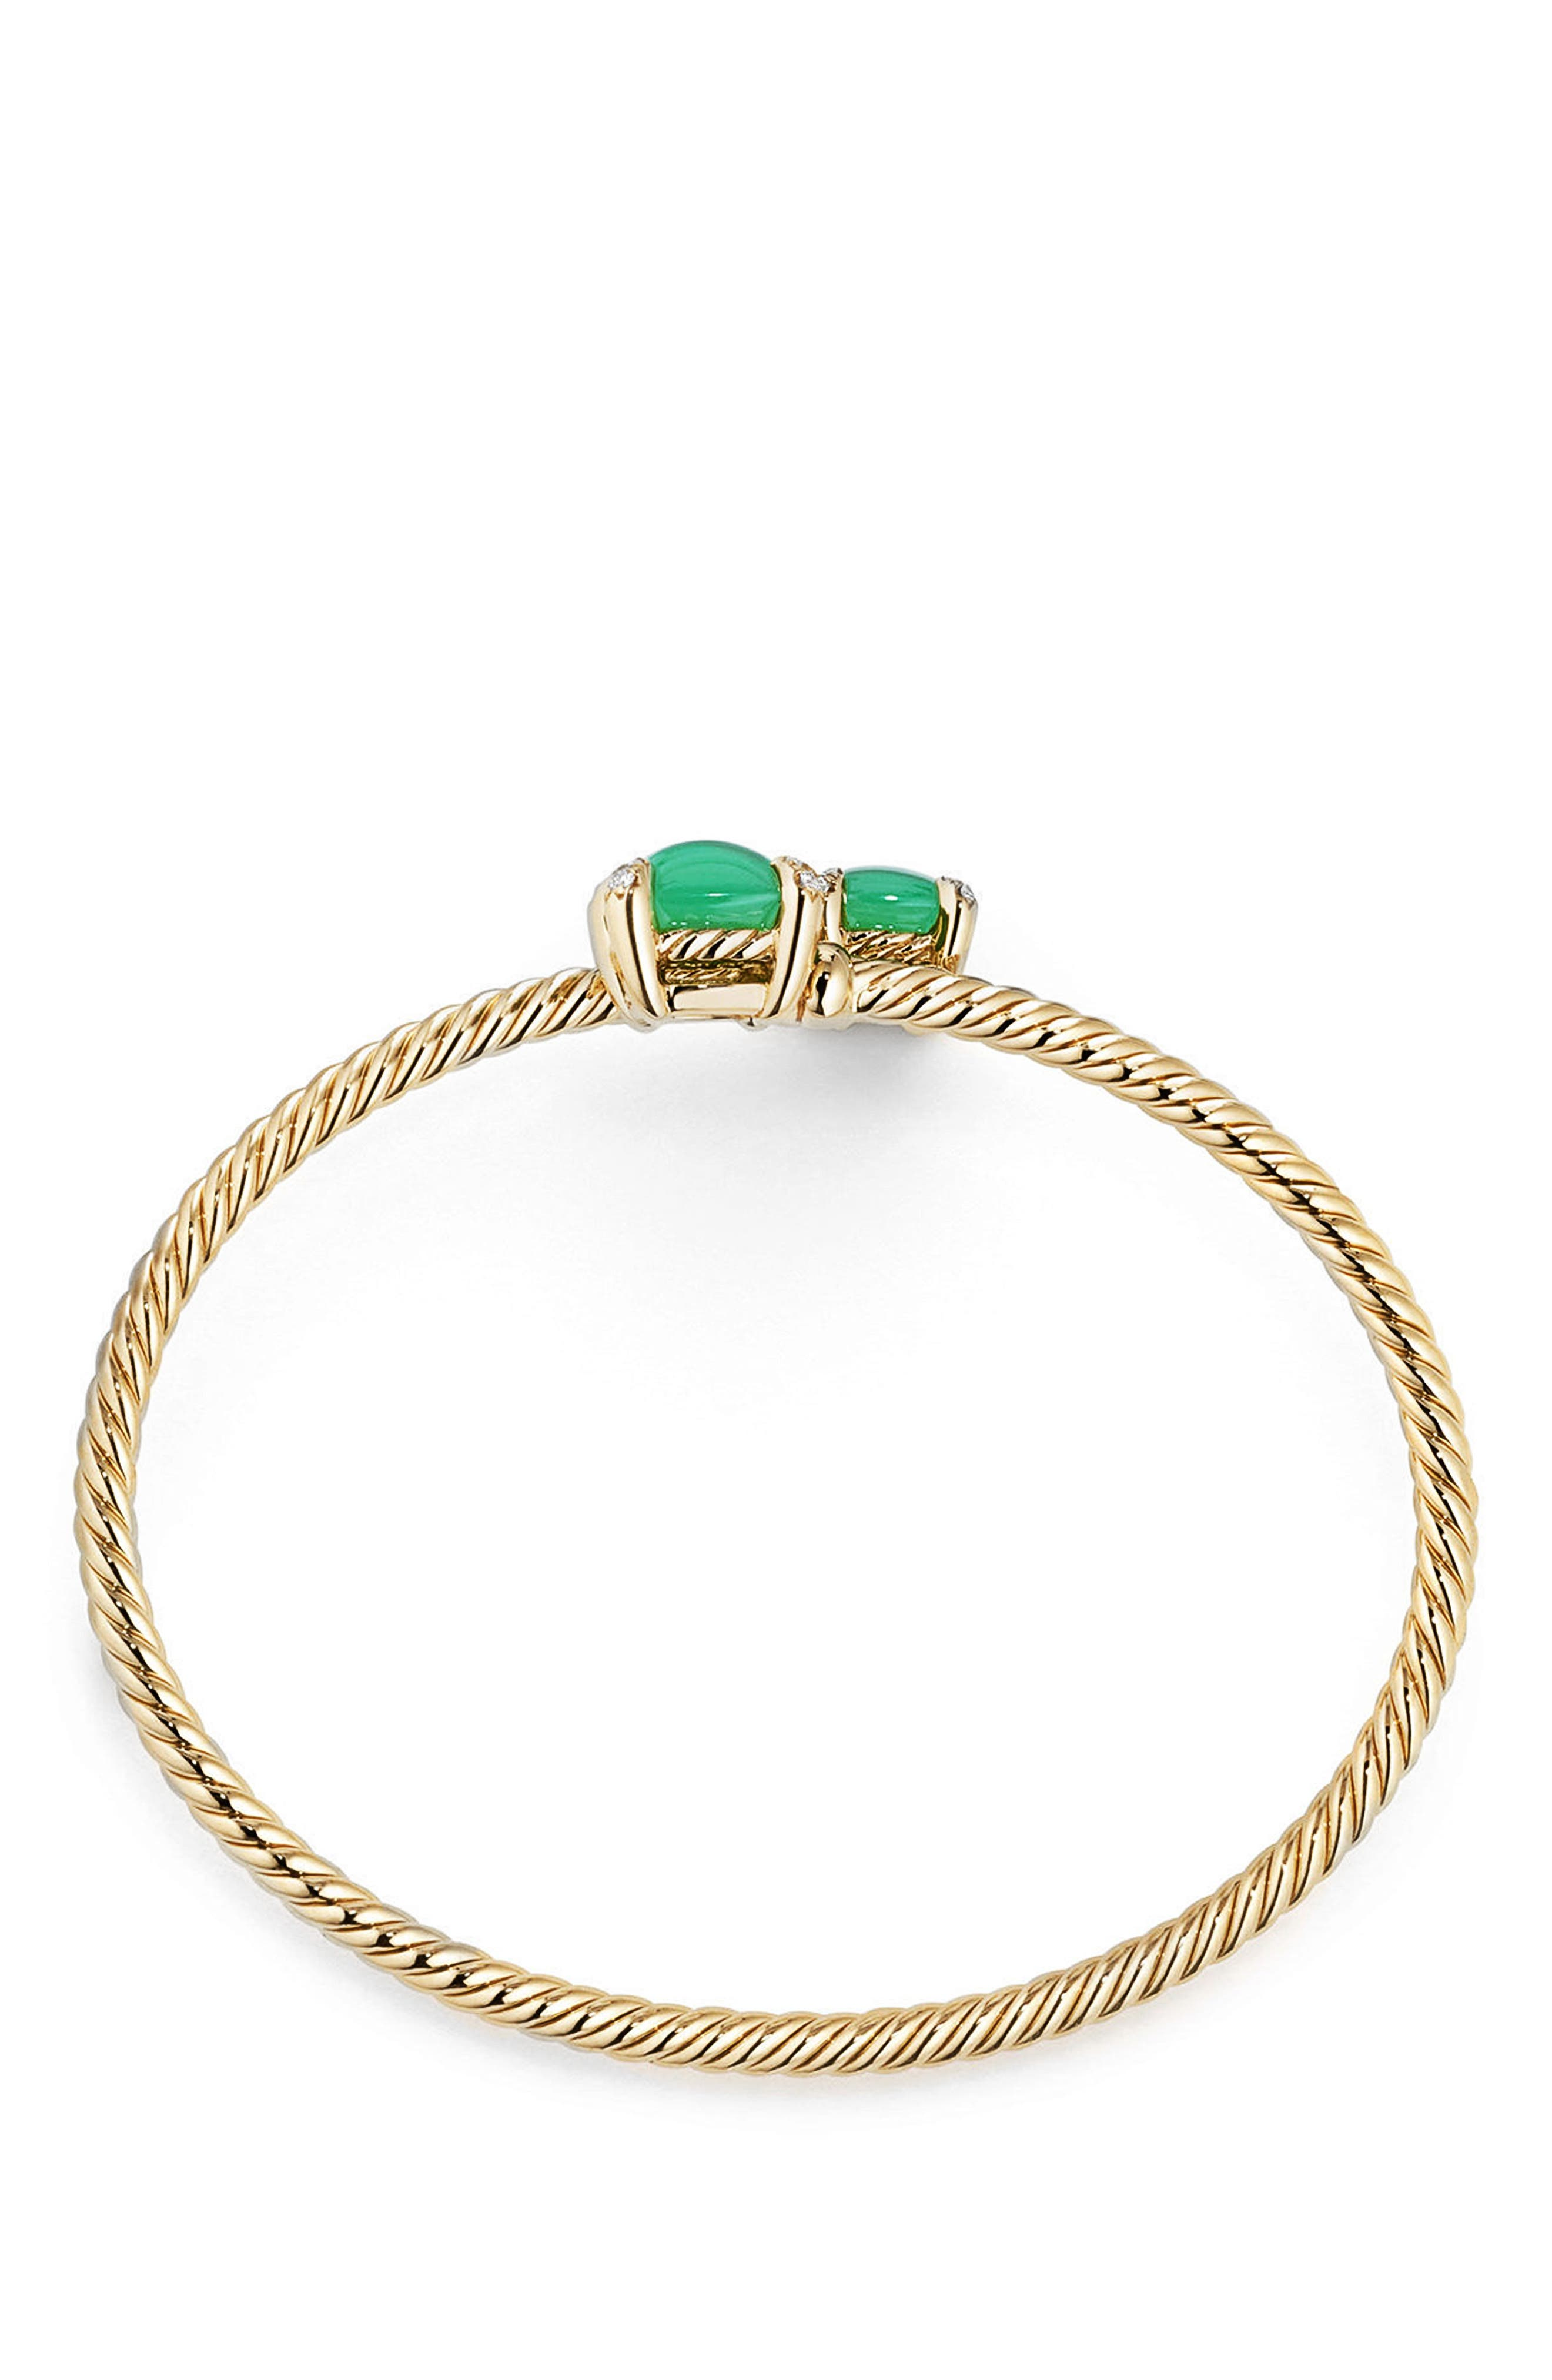 Châtelaine Bypass Bracelet with Semiprecious Stone & Diamonds in 18K Gold,                             Alternate thumbnail 2, color,                             CHRYSOPRASE